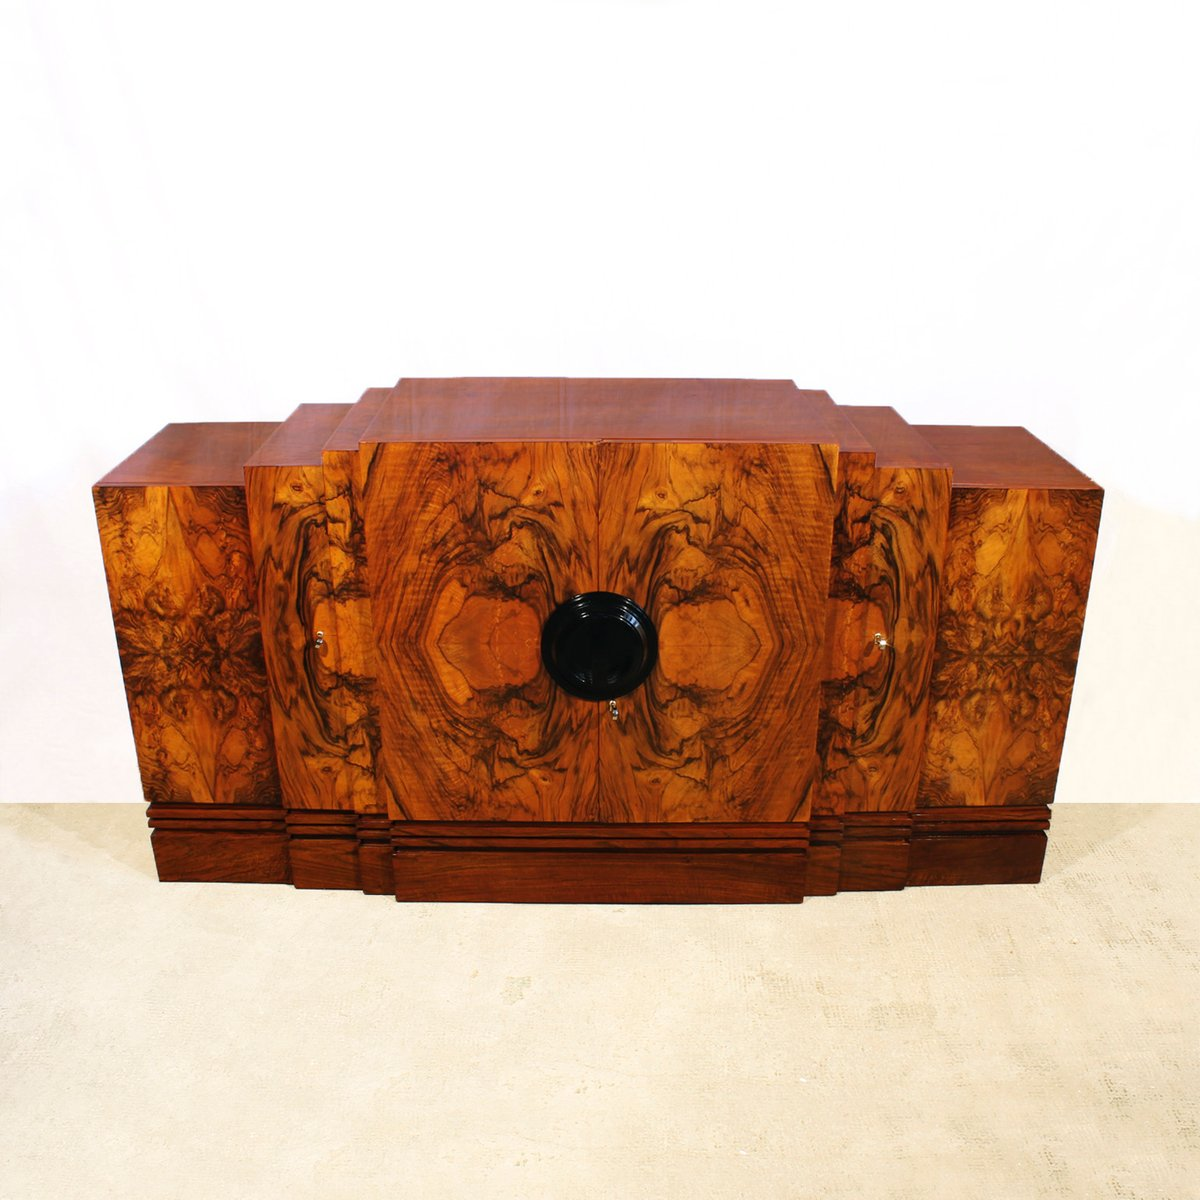 French art deco walnut sideboard 1930s for sale at pamono for Decoration maison 1930